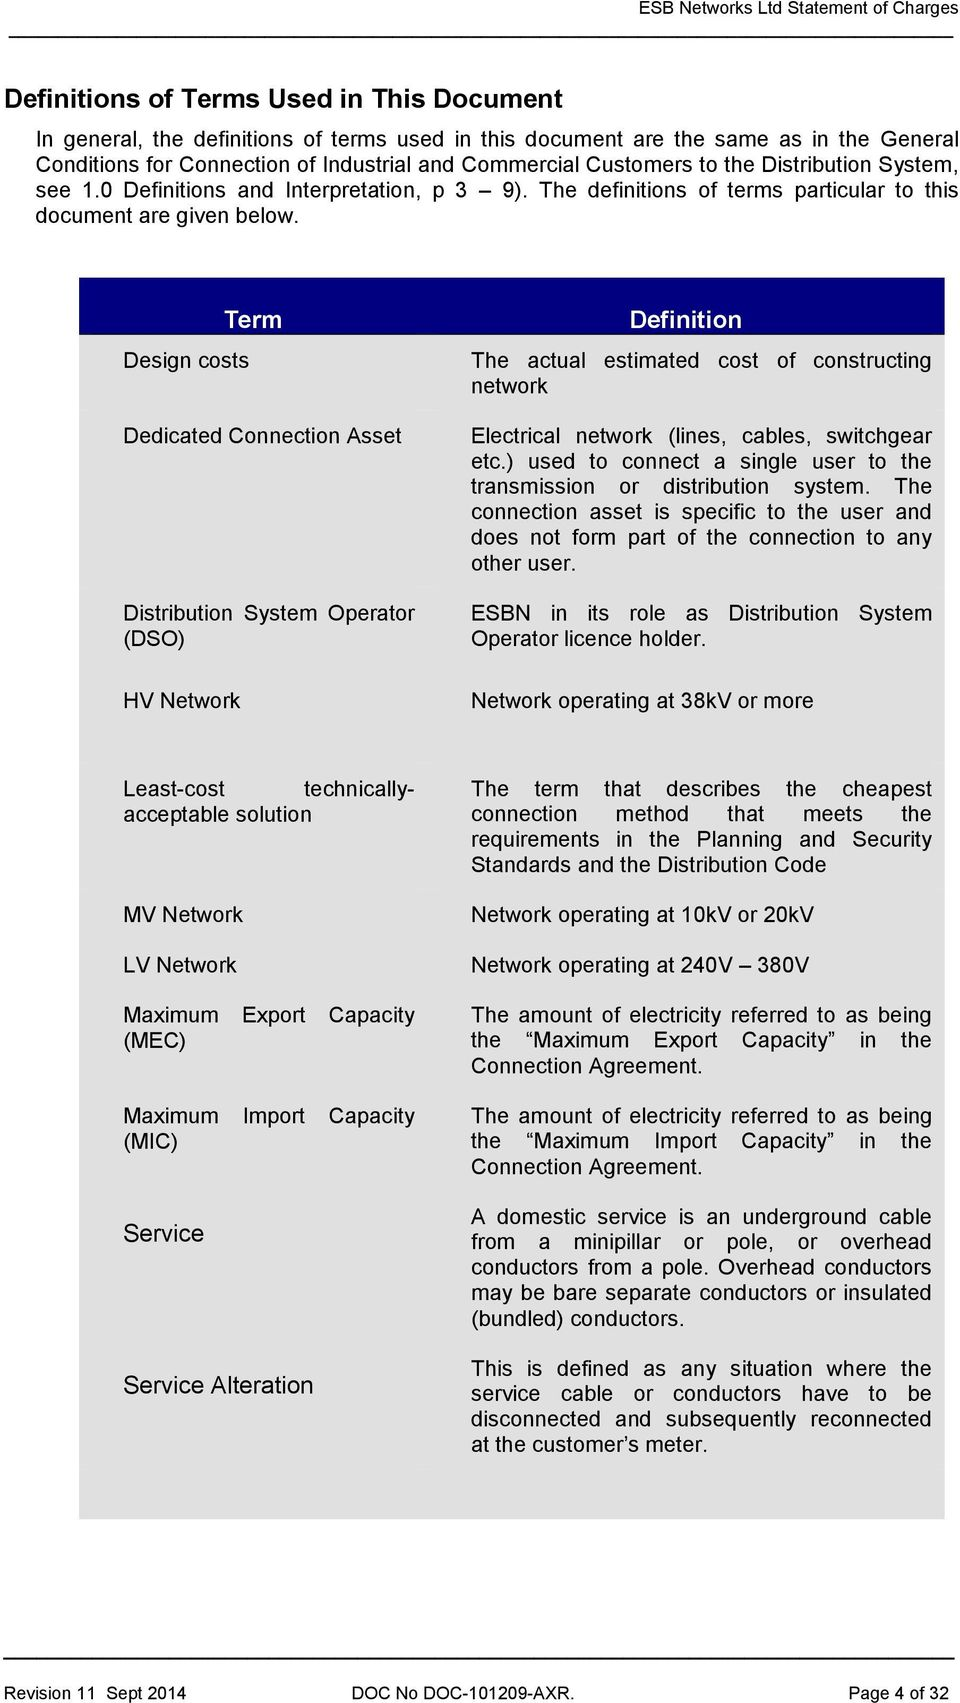 Design costs Term Dedicated Connection Asset Distribution System Operator (DSO) HV Network Definition The actual estimated cost of constructing network Electrical network (lines, cables, switchgear